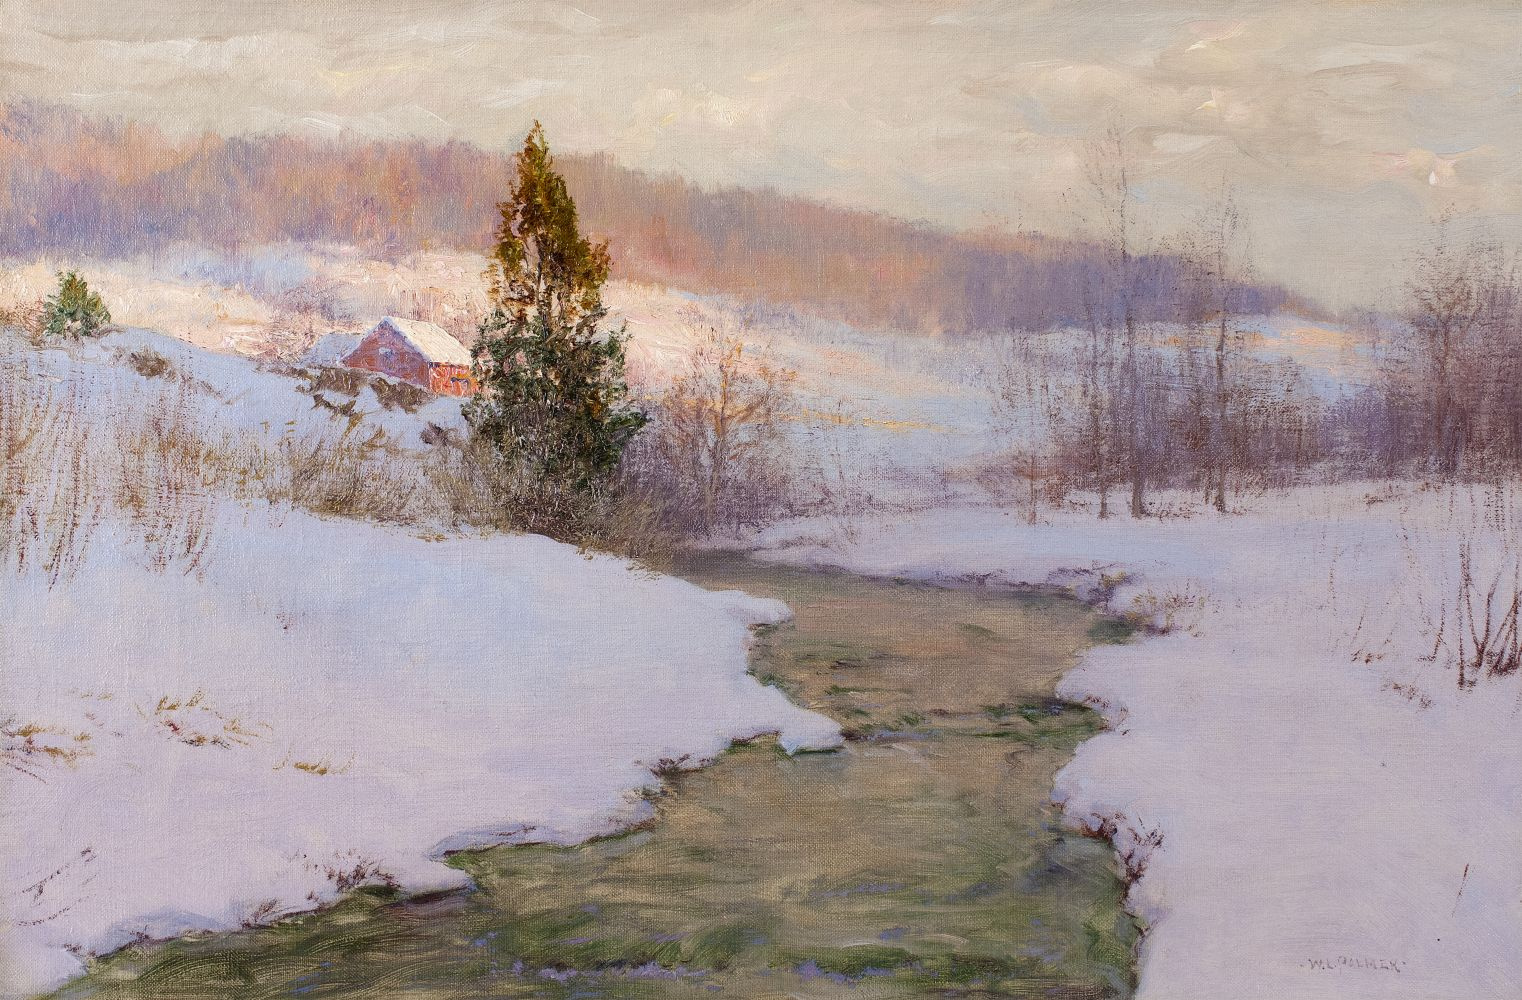 Walter Launt Palmer (1854–1932), An Upland Stream, 1904, oil on canvas, 16 x 24 in., signed lower right: W. L. Palmer